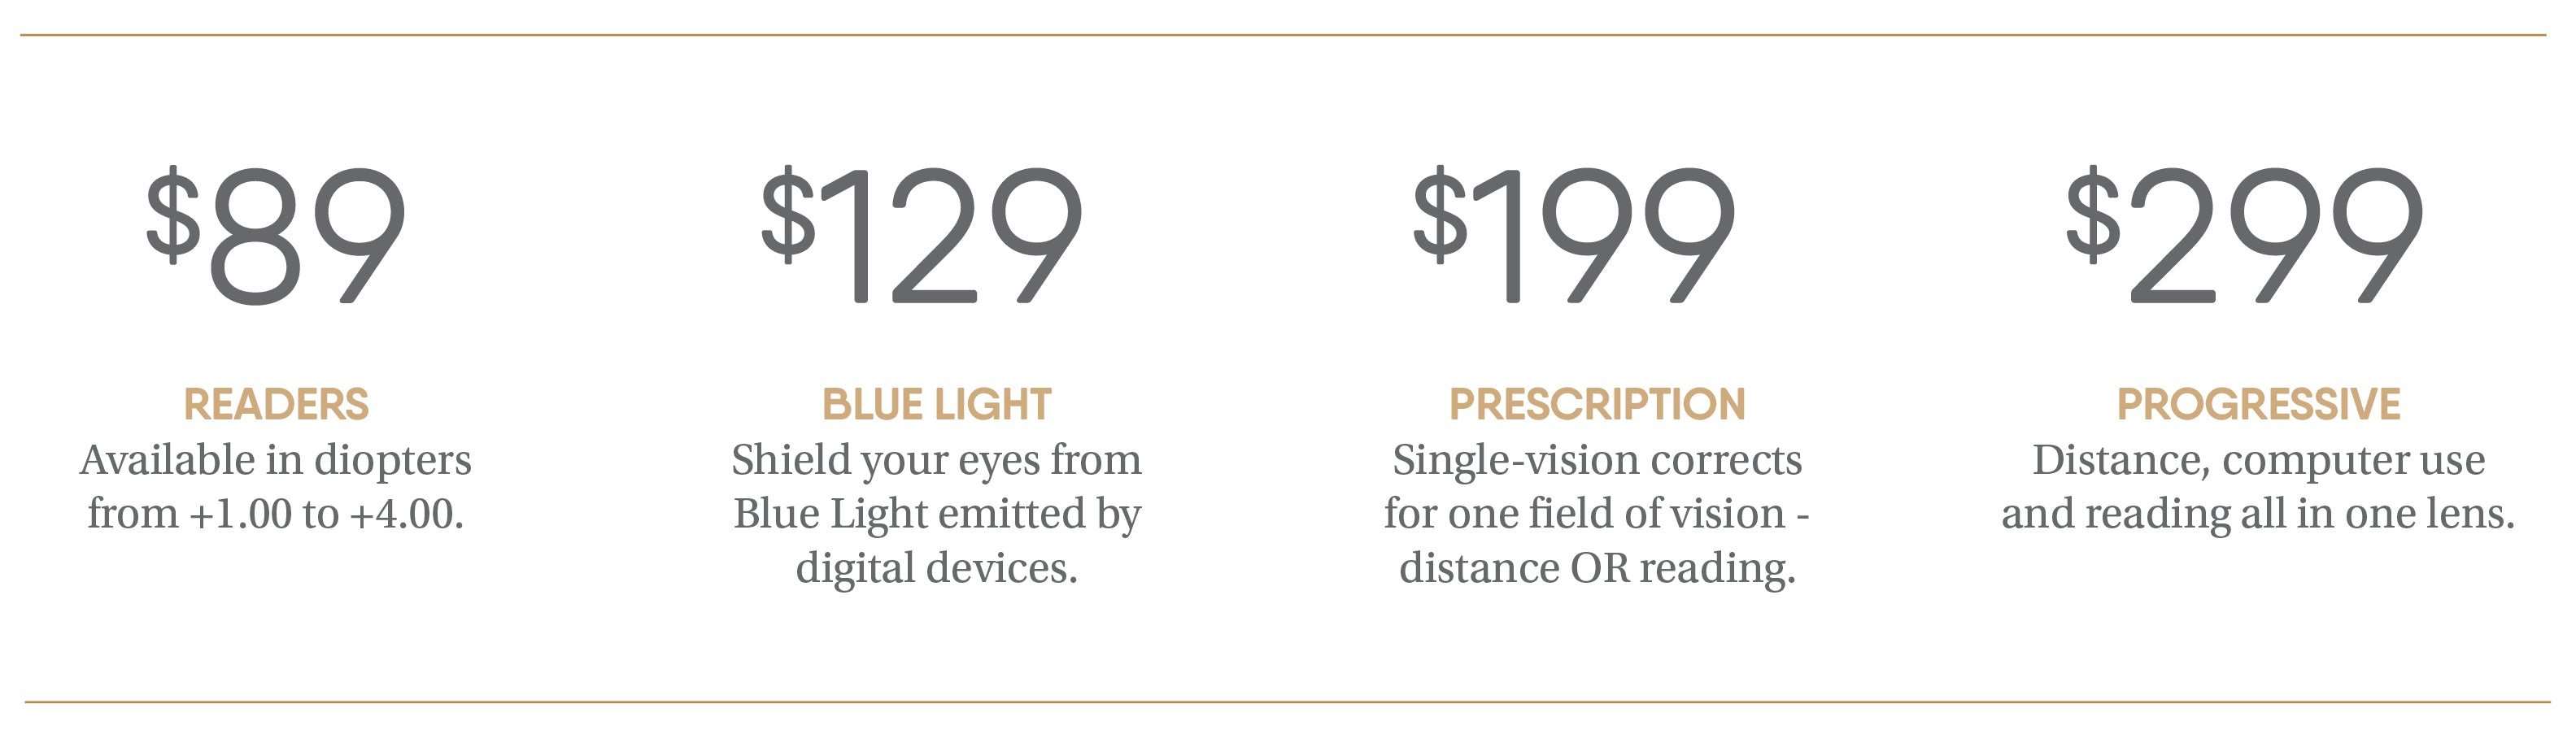 eyebobs pricing